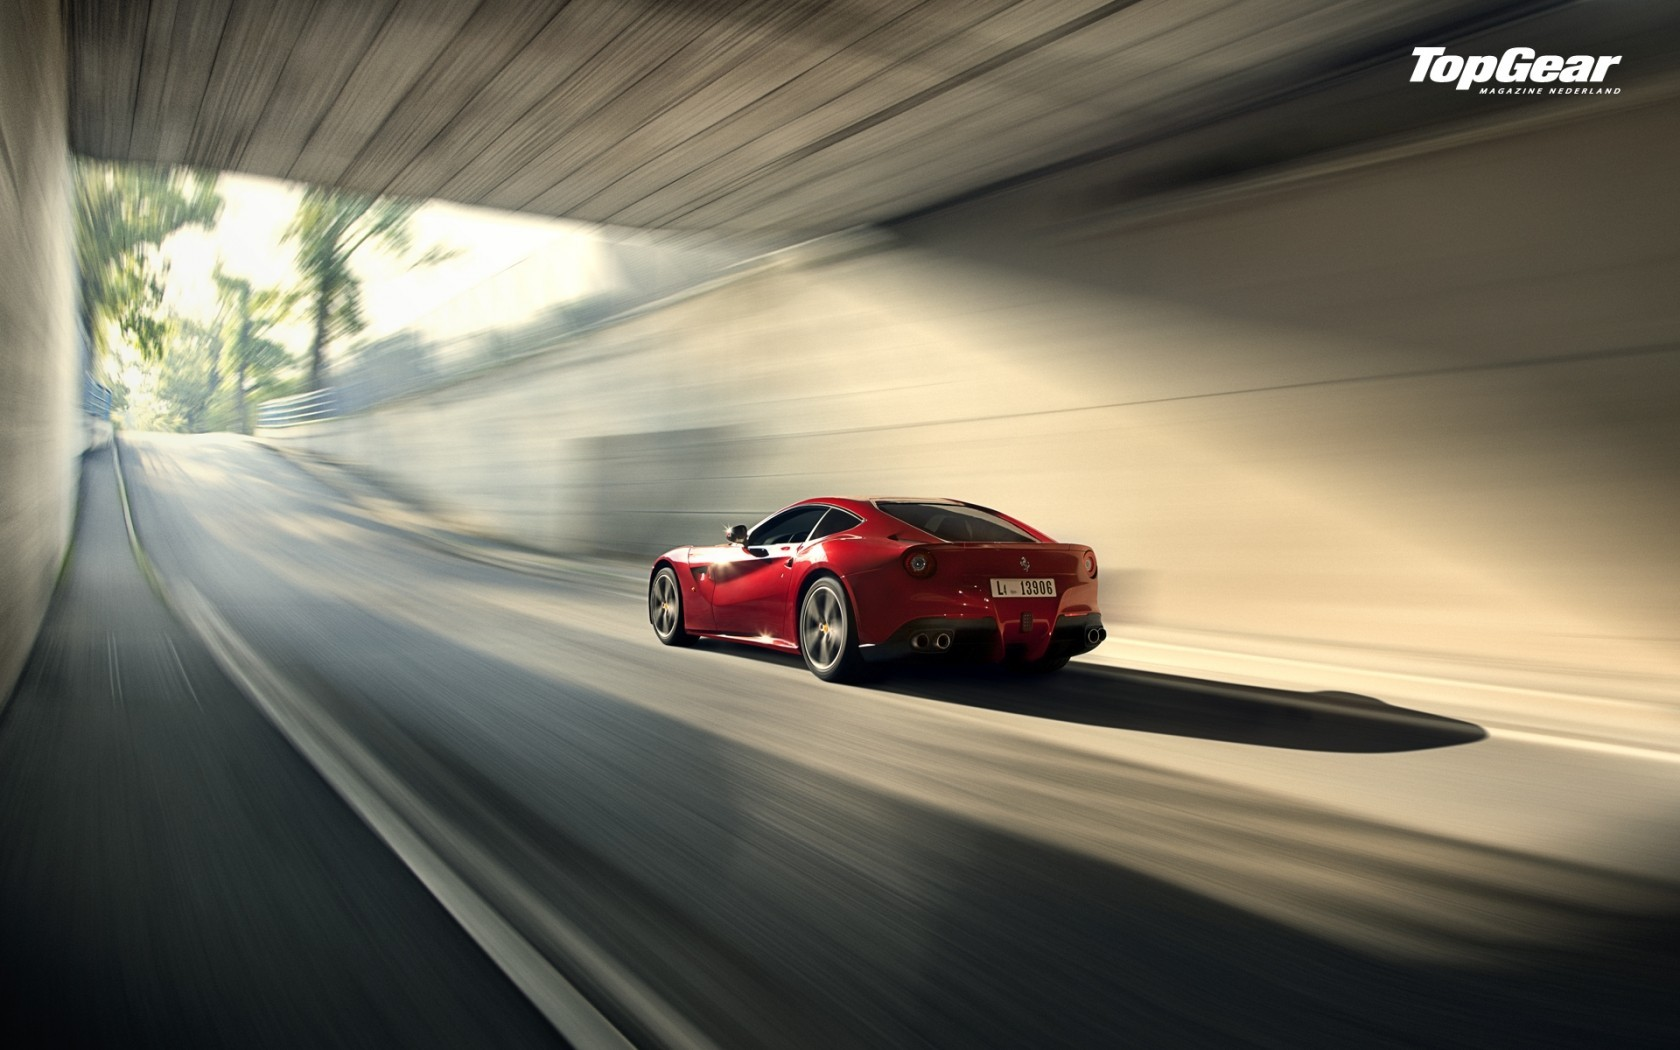 Super Car Wallpaper Hd For Mobile Ferrari F12 Berlinetta Top Gear Wallpapers Hd Desktop